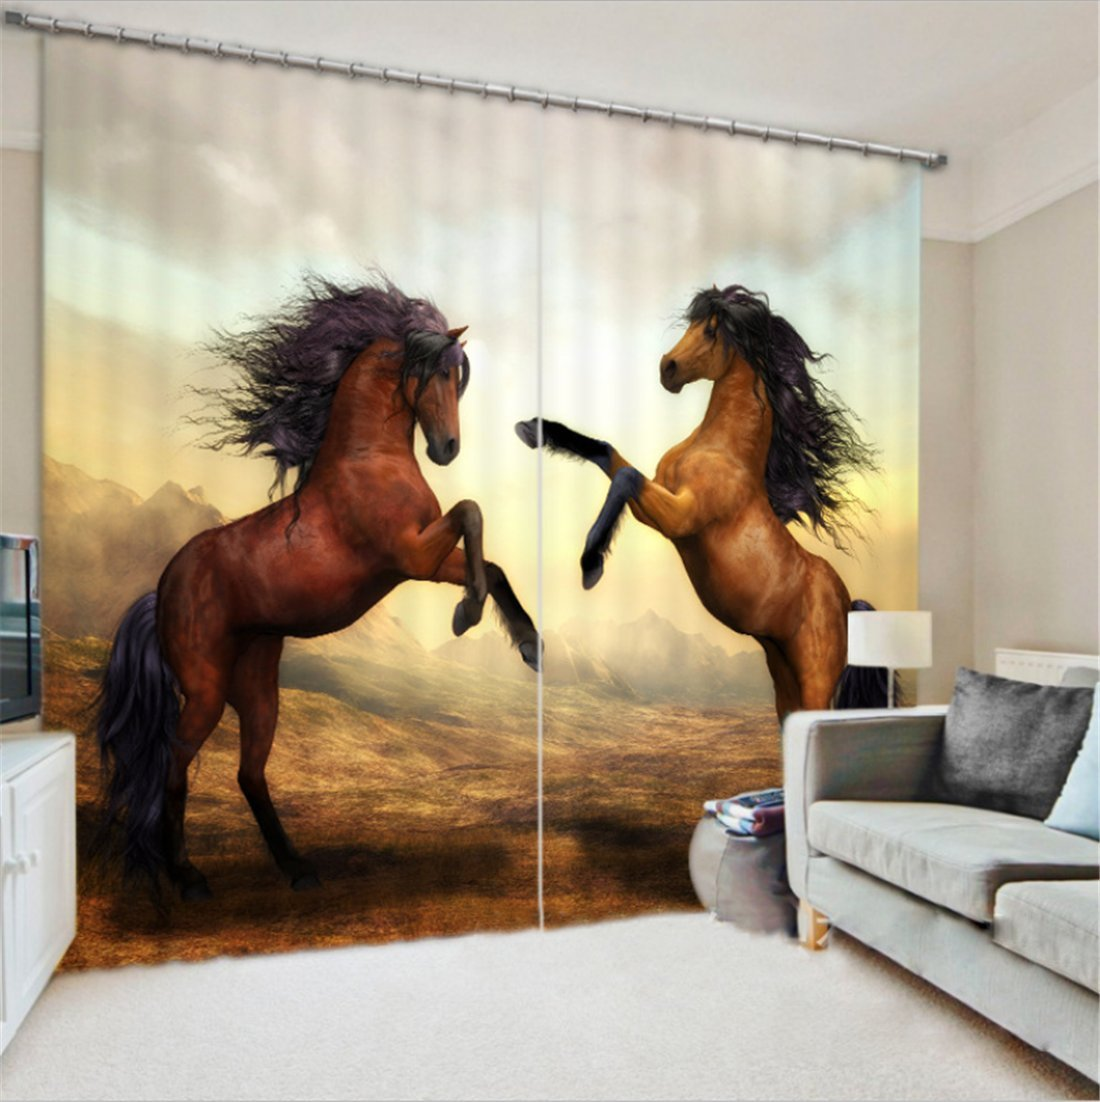 LB 2 Panels Room Darkening Thermal Insulated Blackout Window Curtains,Standing Horse 3D Window Drapes for Living Room Bedroom - 80 Inch Width by 84 Inch Length